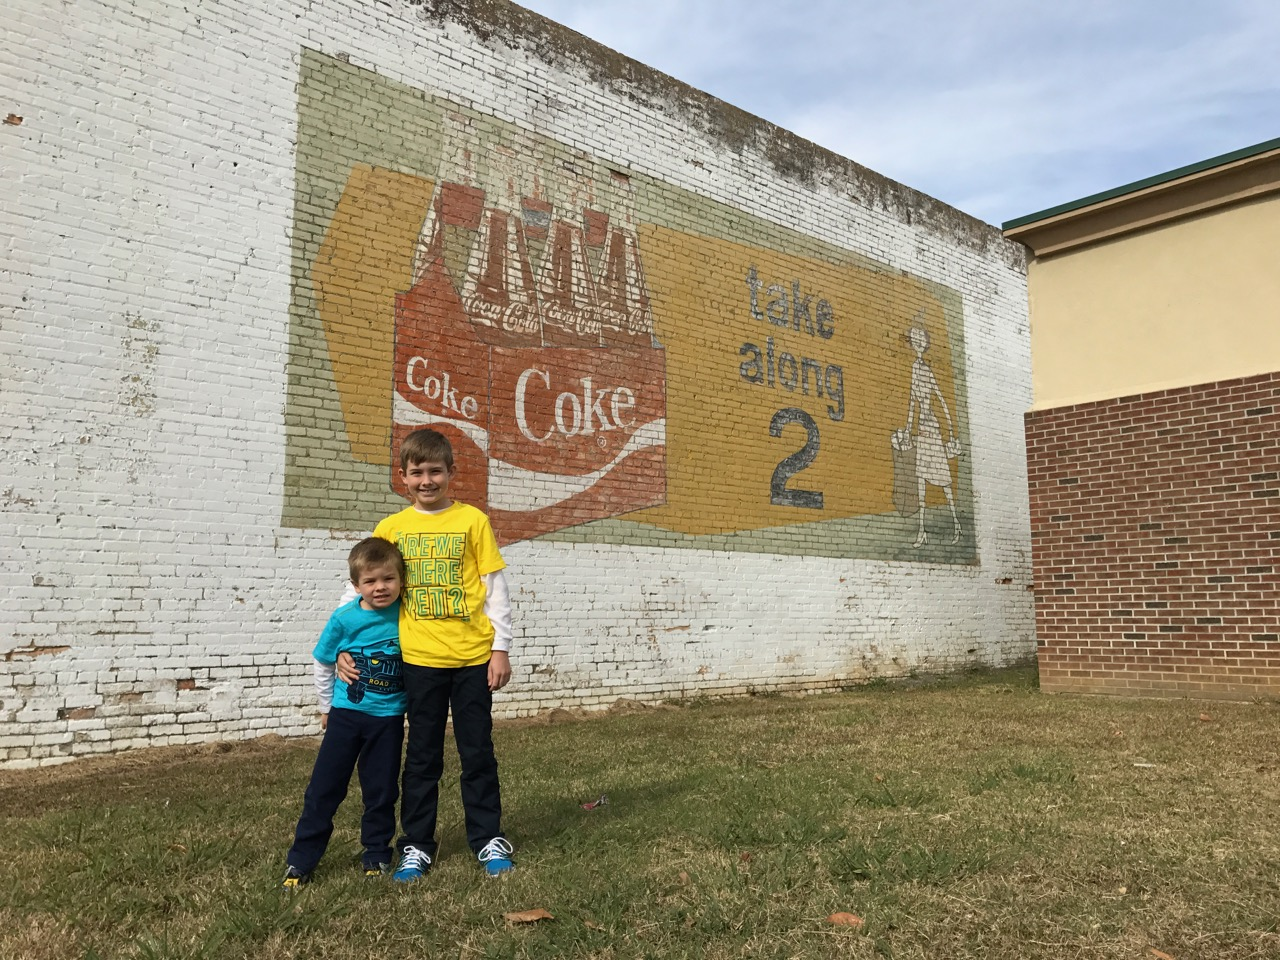 Cool Coke Sign in Rowland, NC